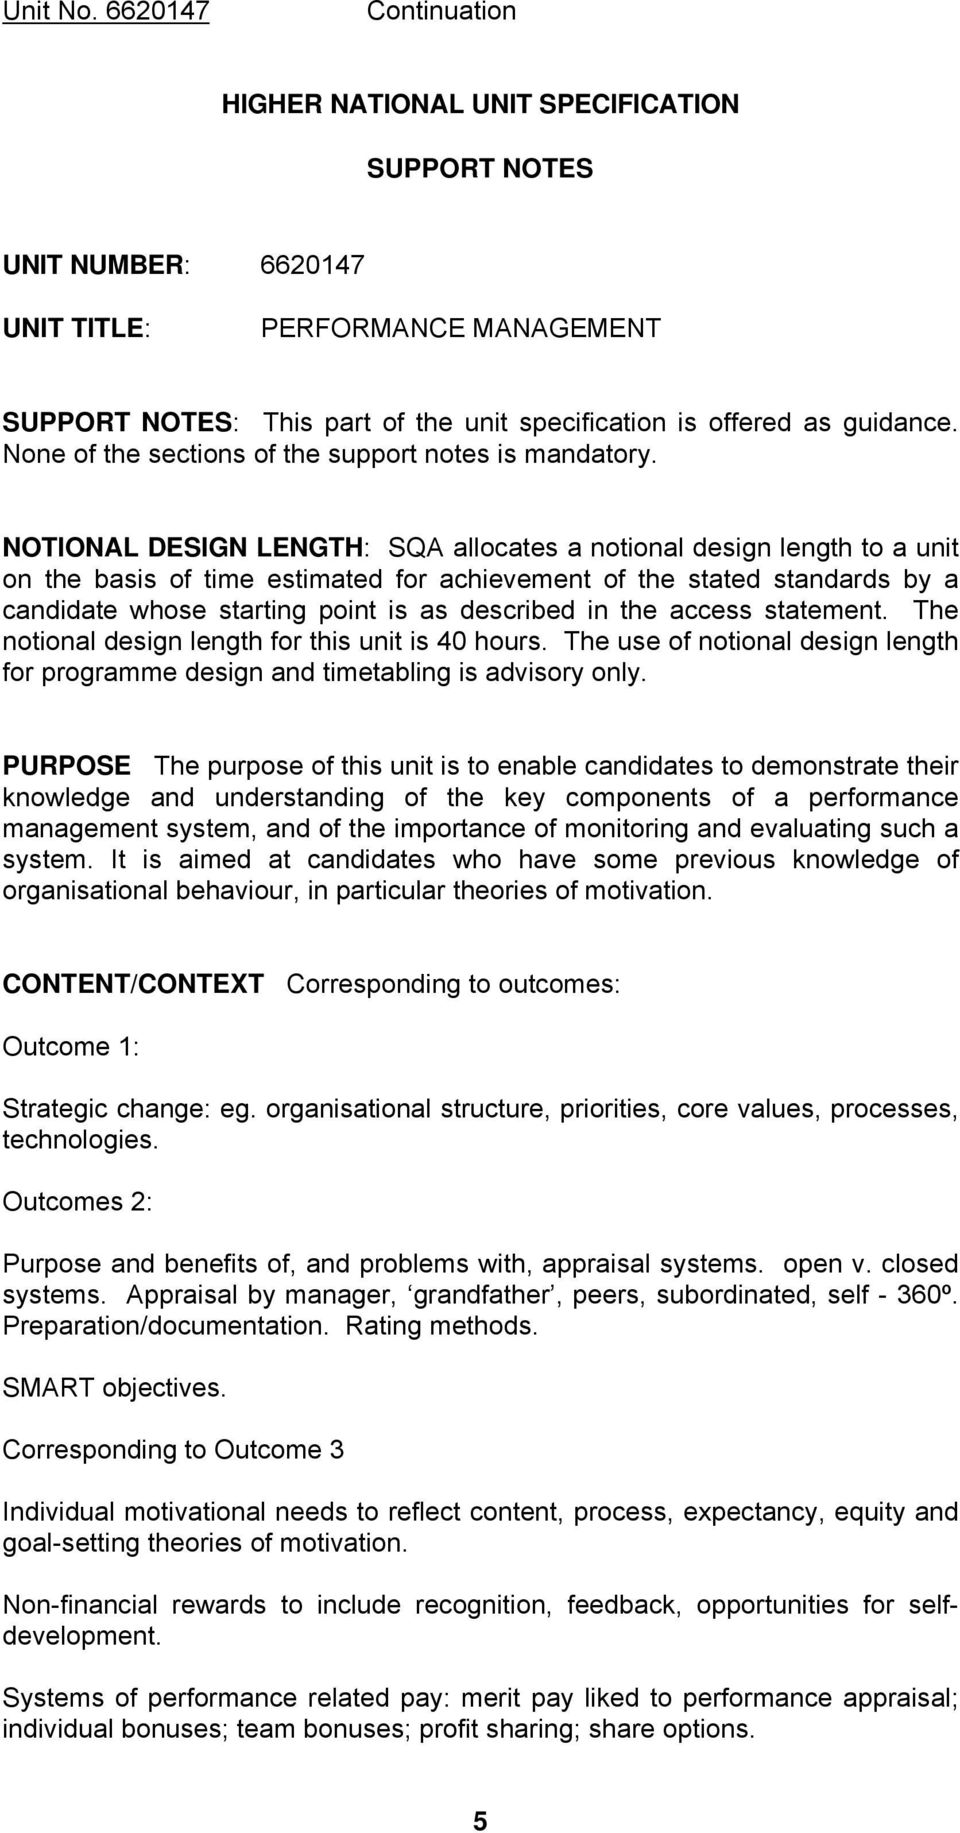 NOTIONAL DESIGN LENGTH: SQA allocates a notional design length to a unit on the basis of time estimated for achievement of the stated standards by a candidate whose starting point is as described in